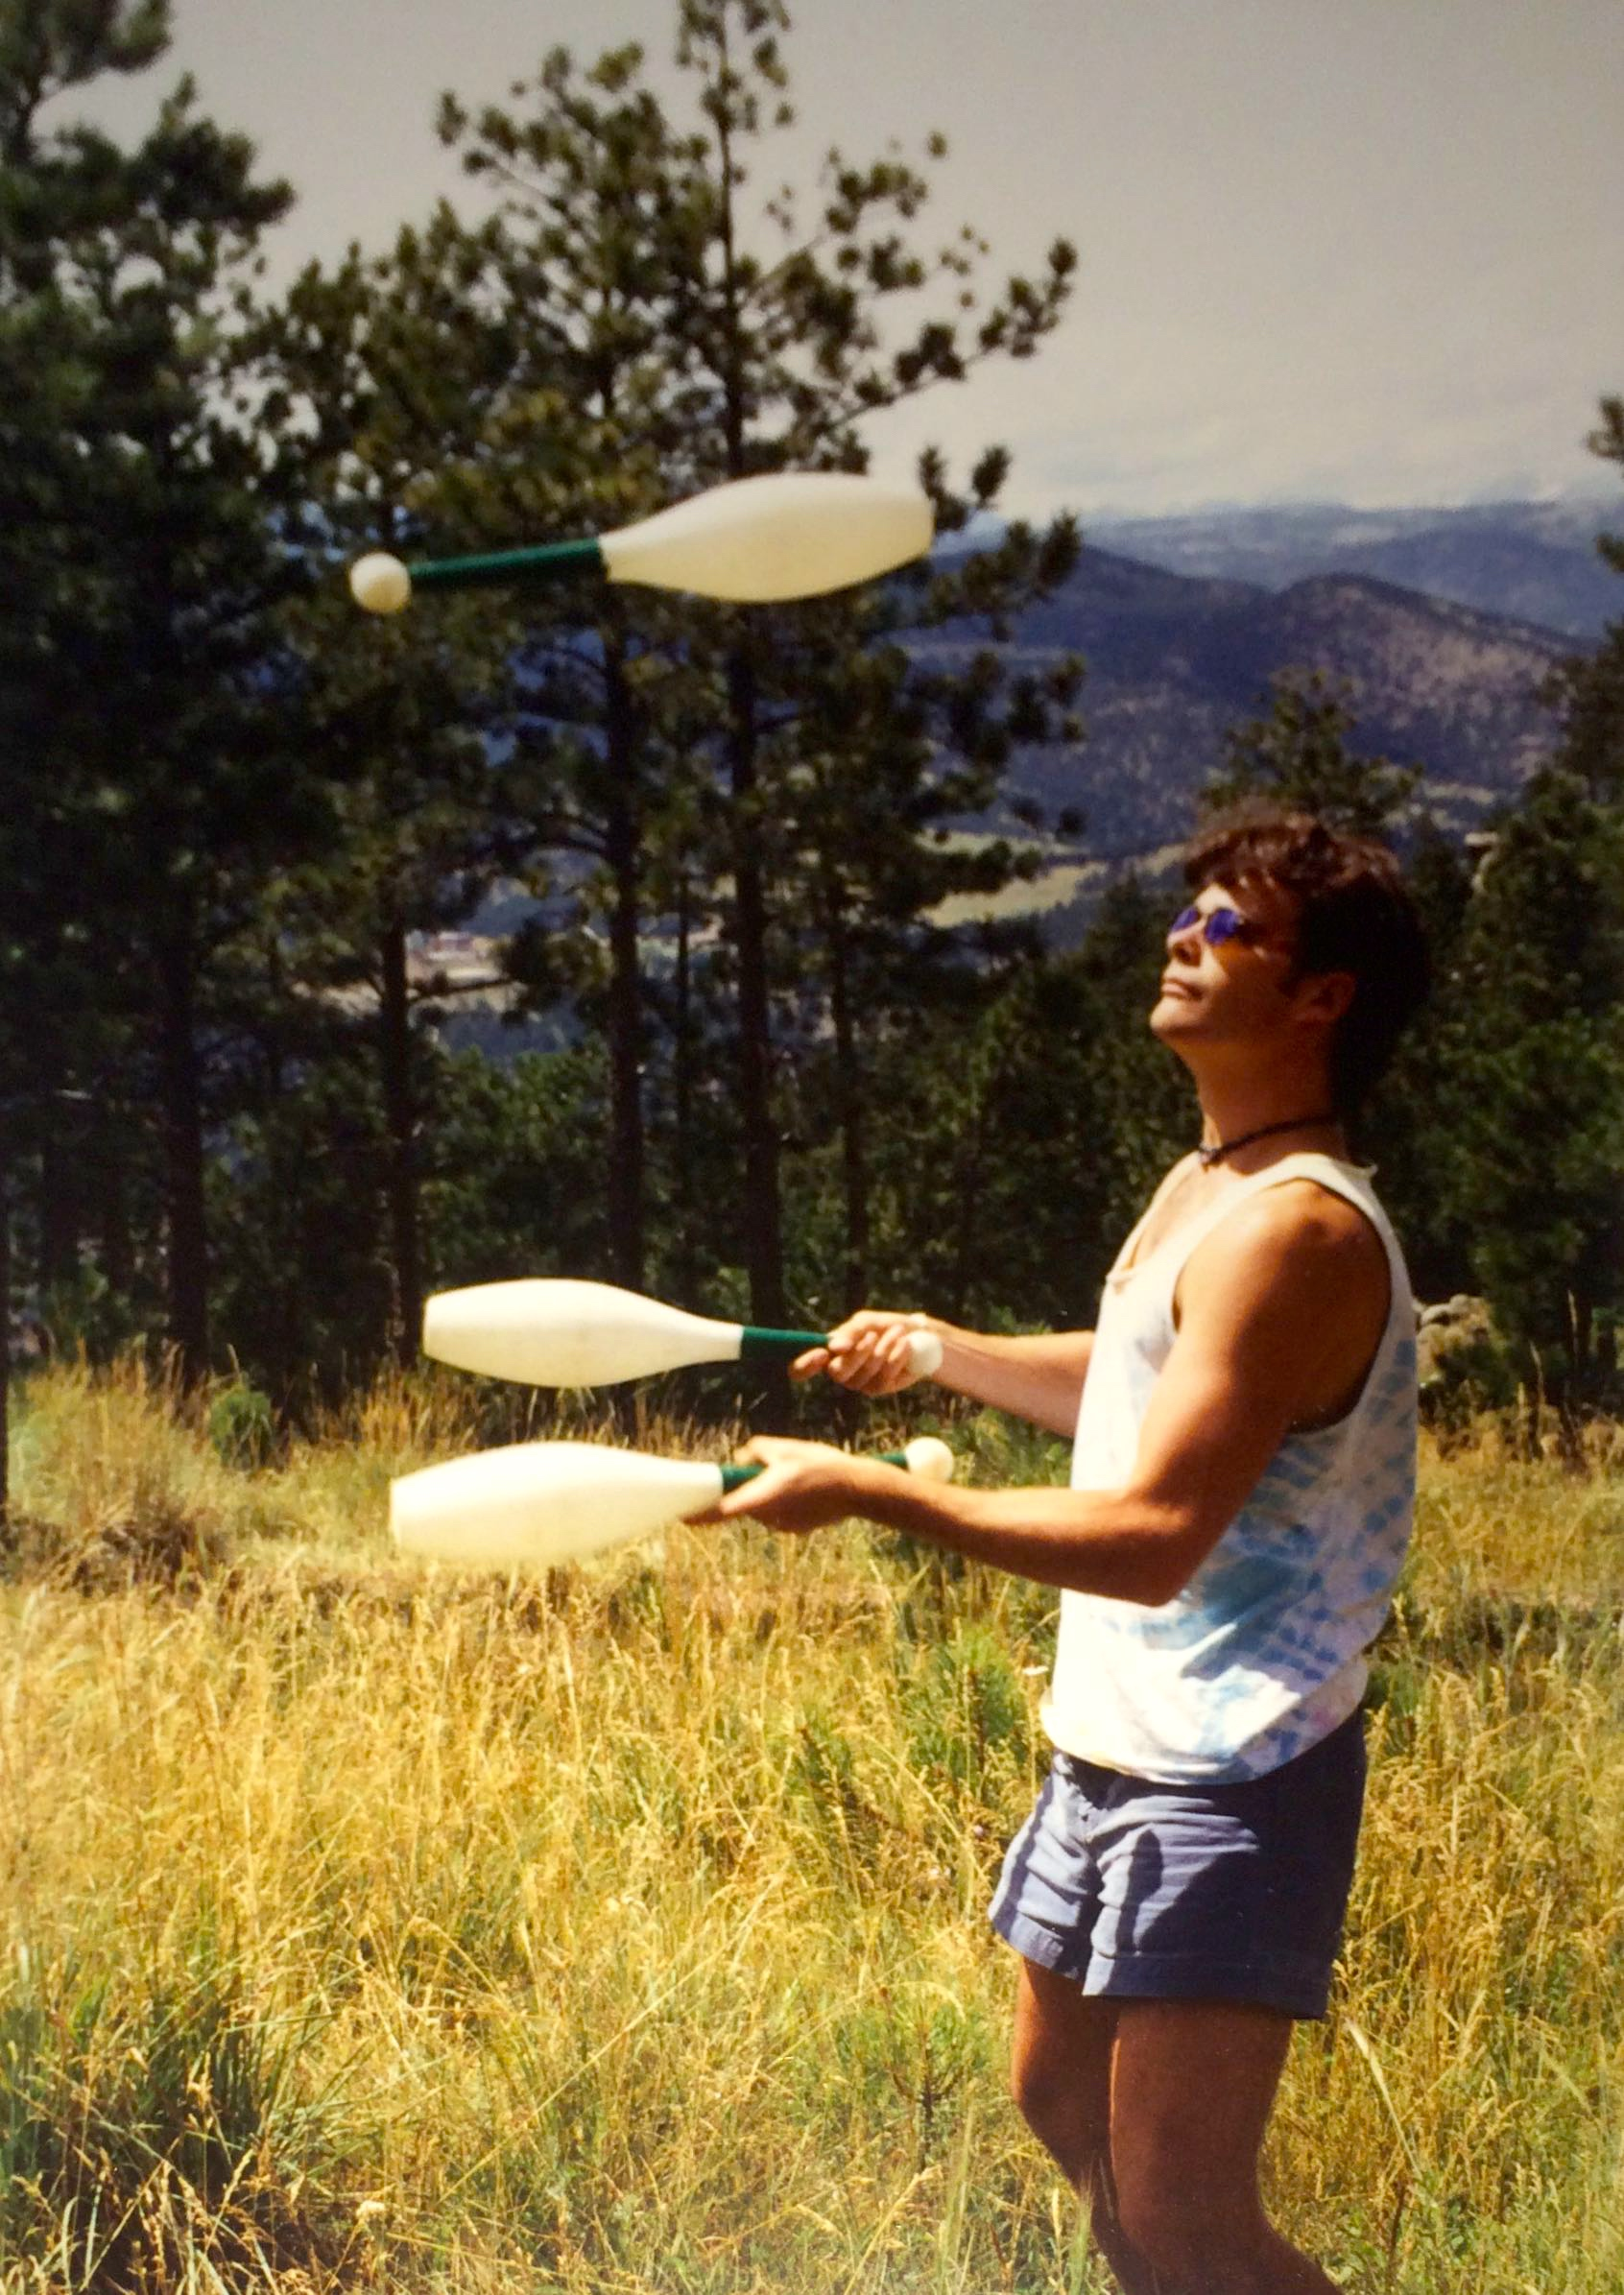 Learning to juggle clubs in the mountains... before all hell broke loose.